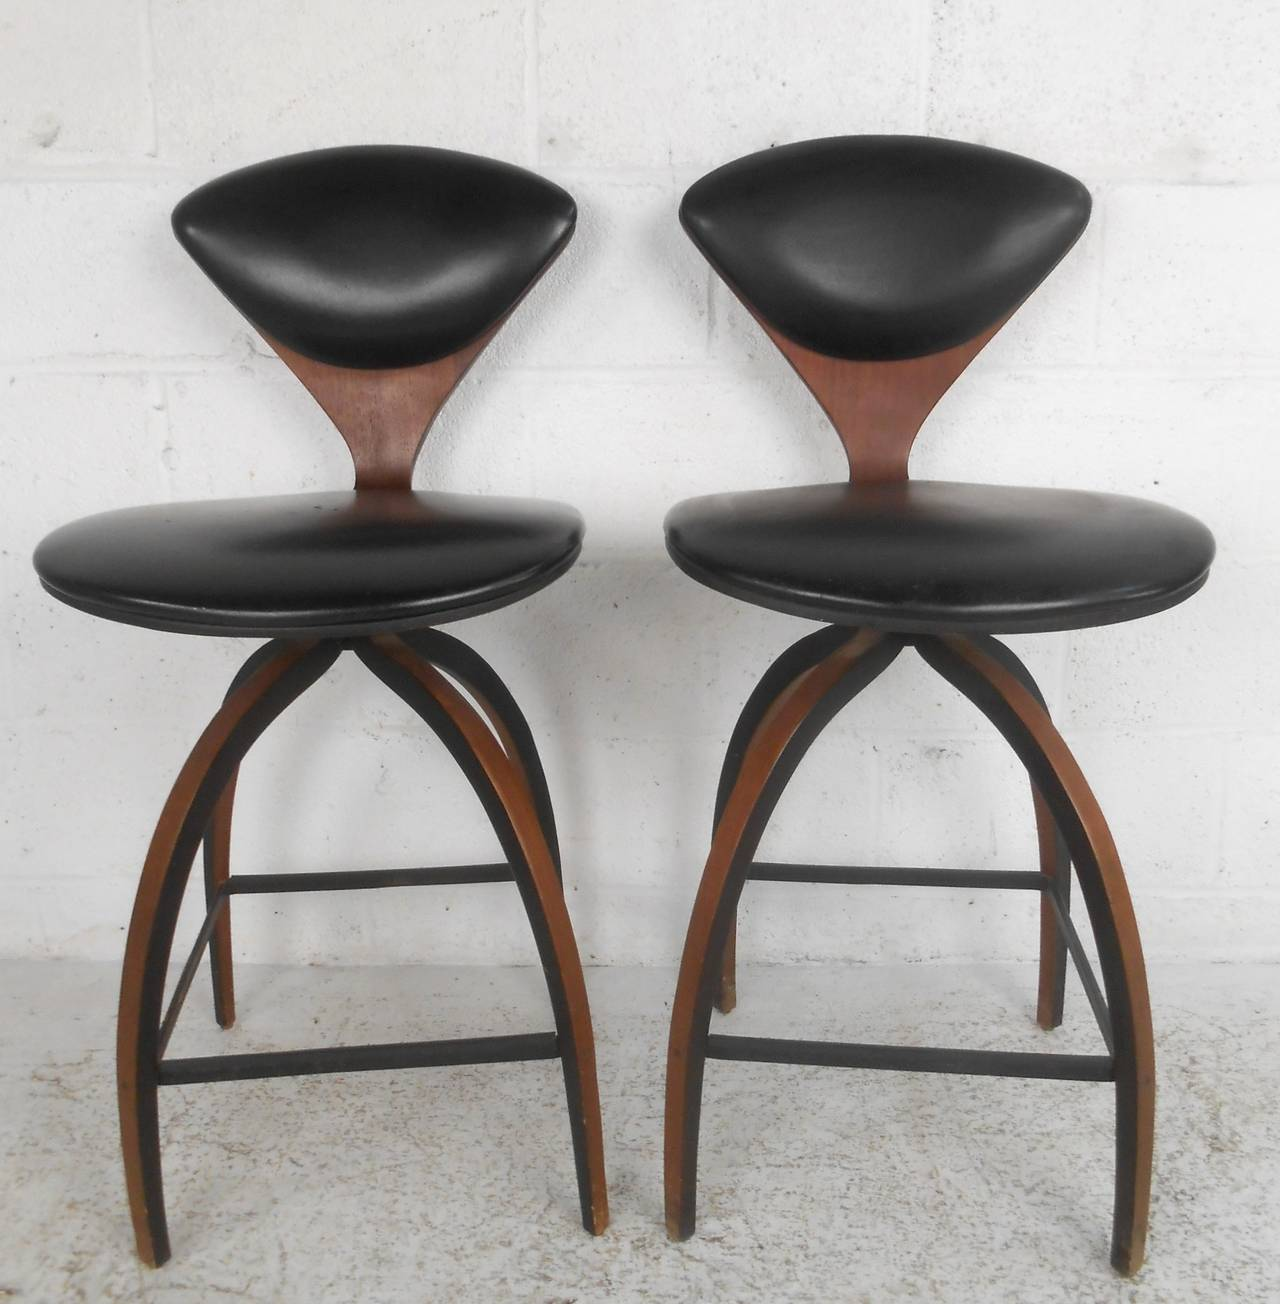 Pair Of Mid Century Modern Plycraft Bar Stools By Norman